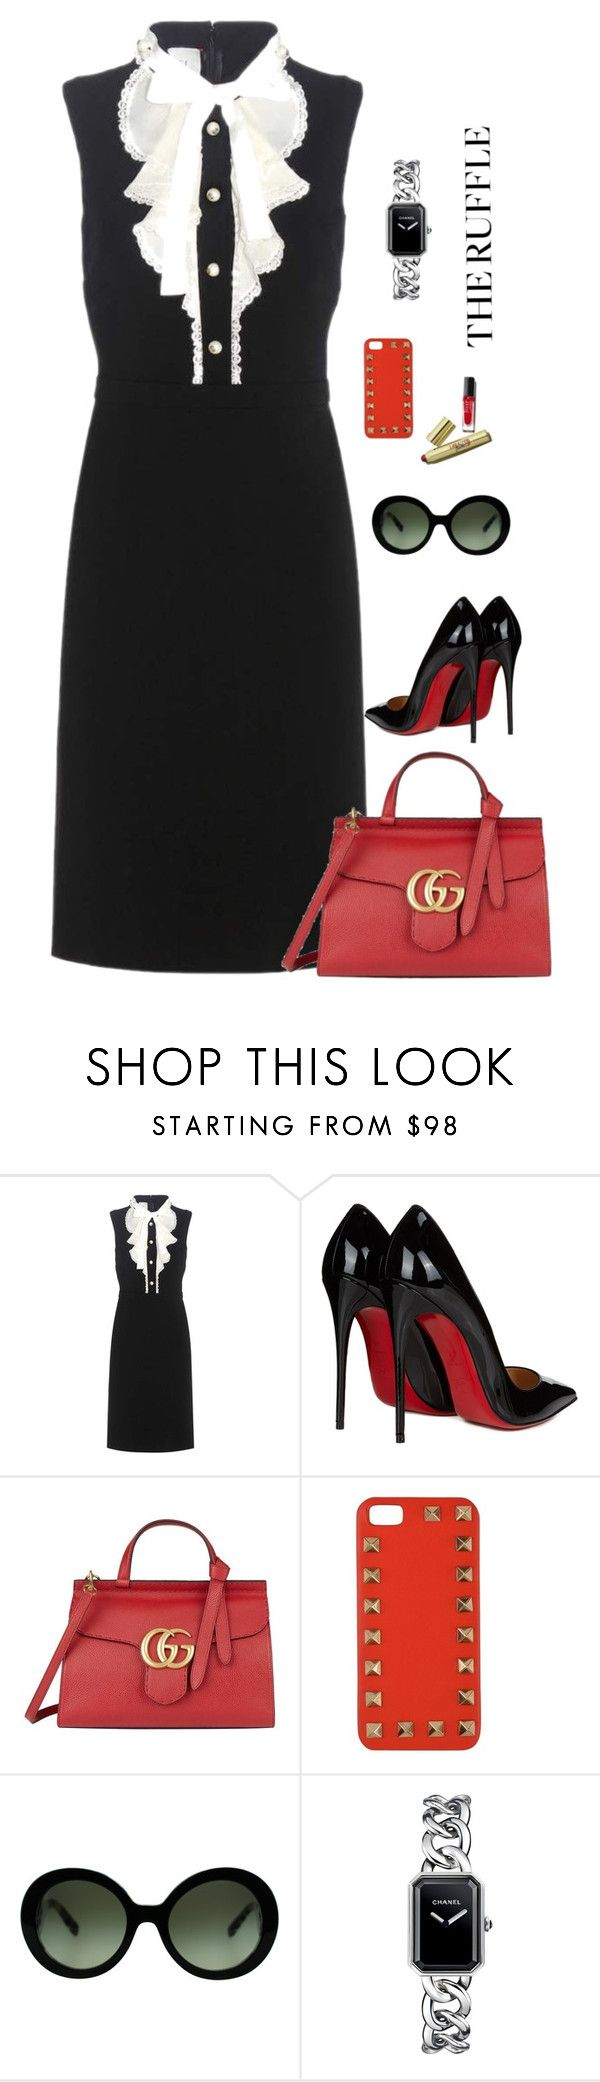 """Sin título #363"" by amchavesj-1 ❤ liked on Polyvore featuring Gucci, Christian Louboutin, Valentino, Prada, Barneys New York, Chanel and ruffles"